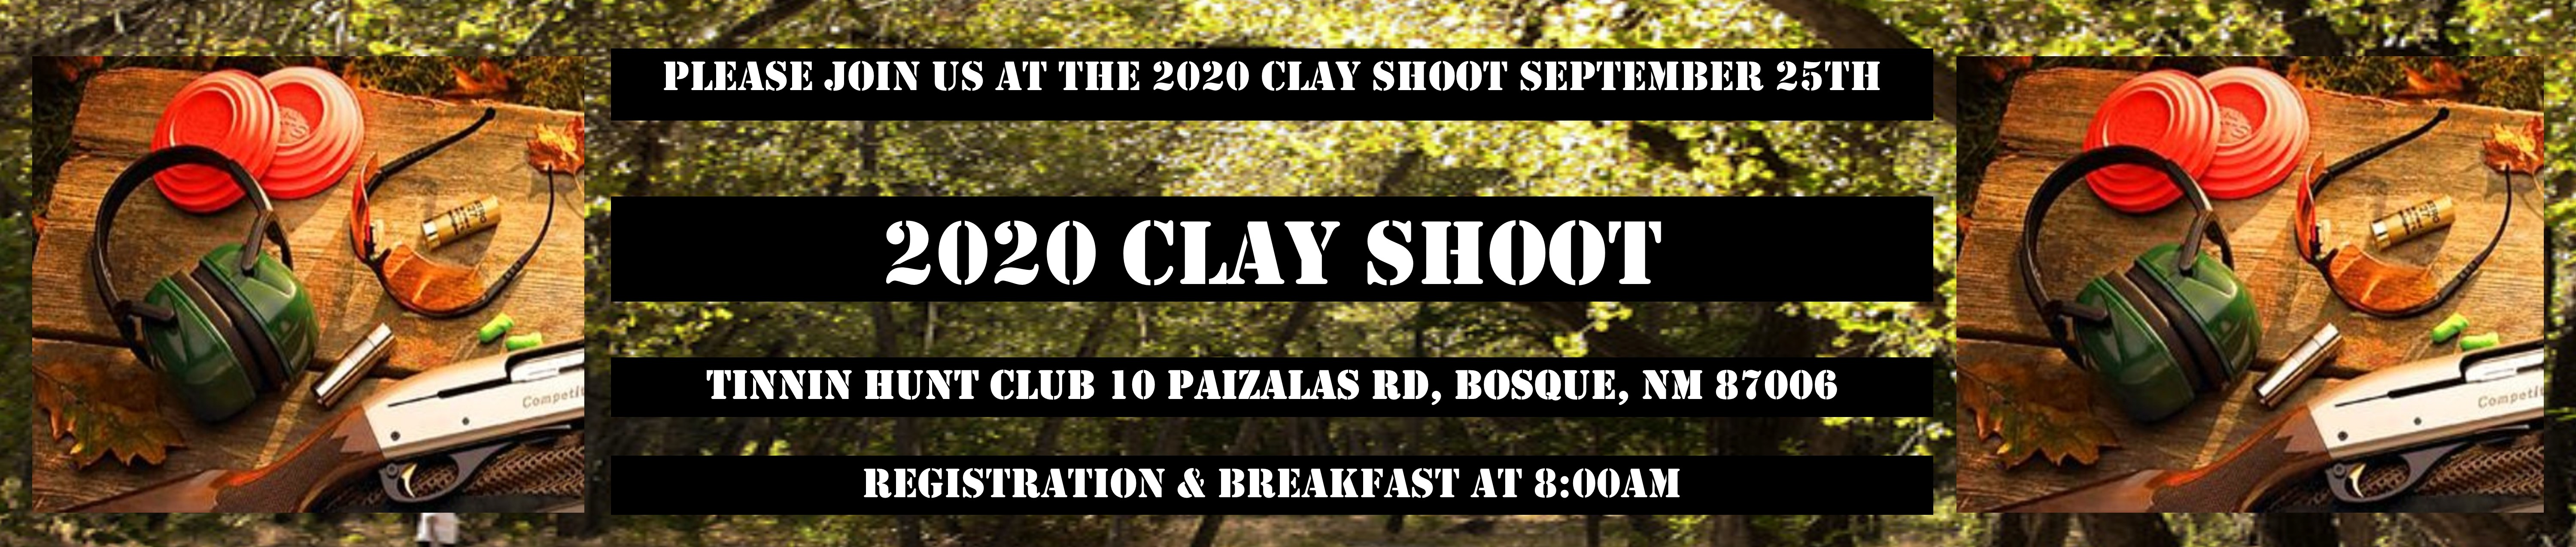 Clay Shoot Banner 2020637089150311065660